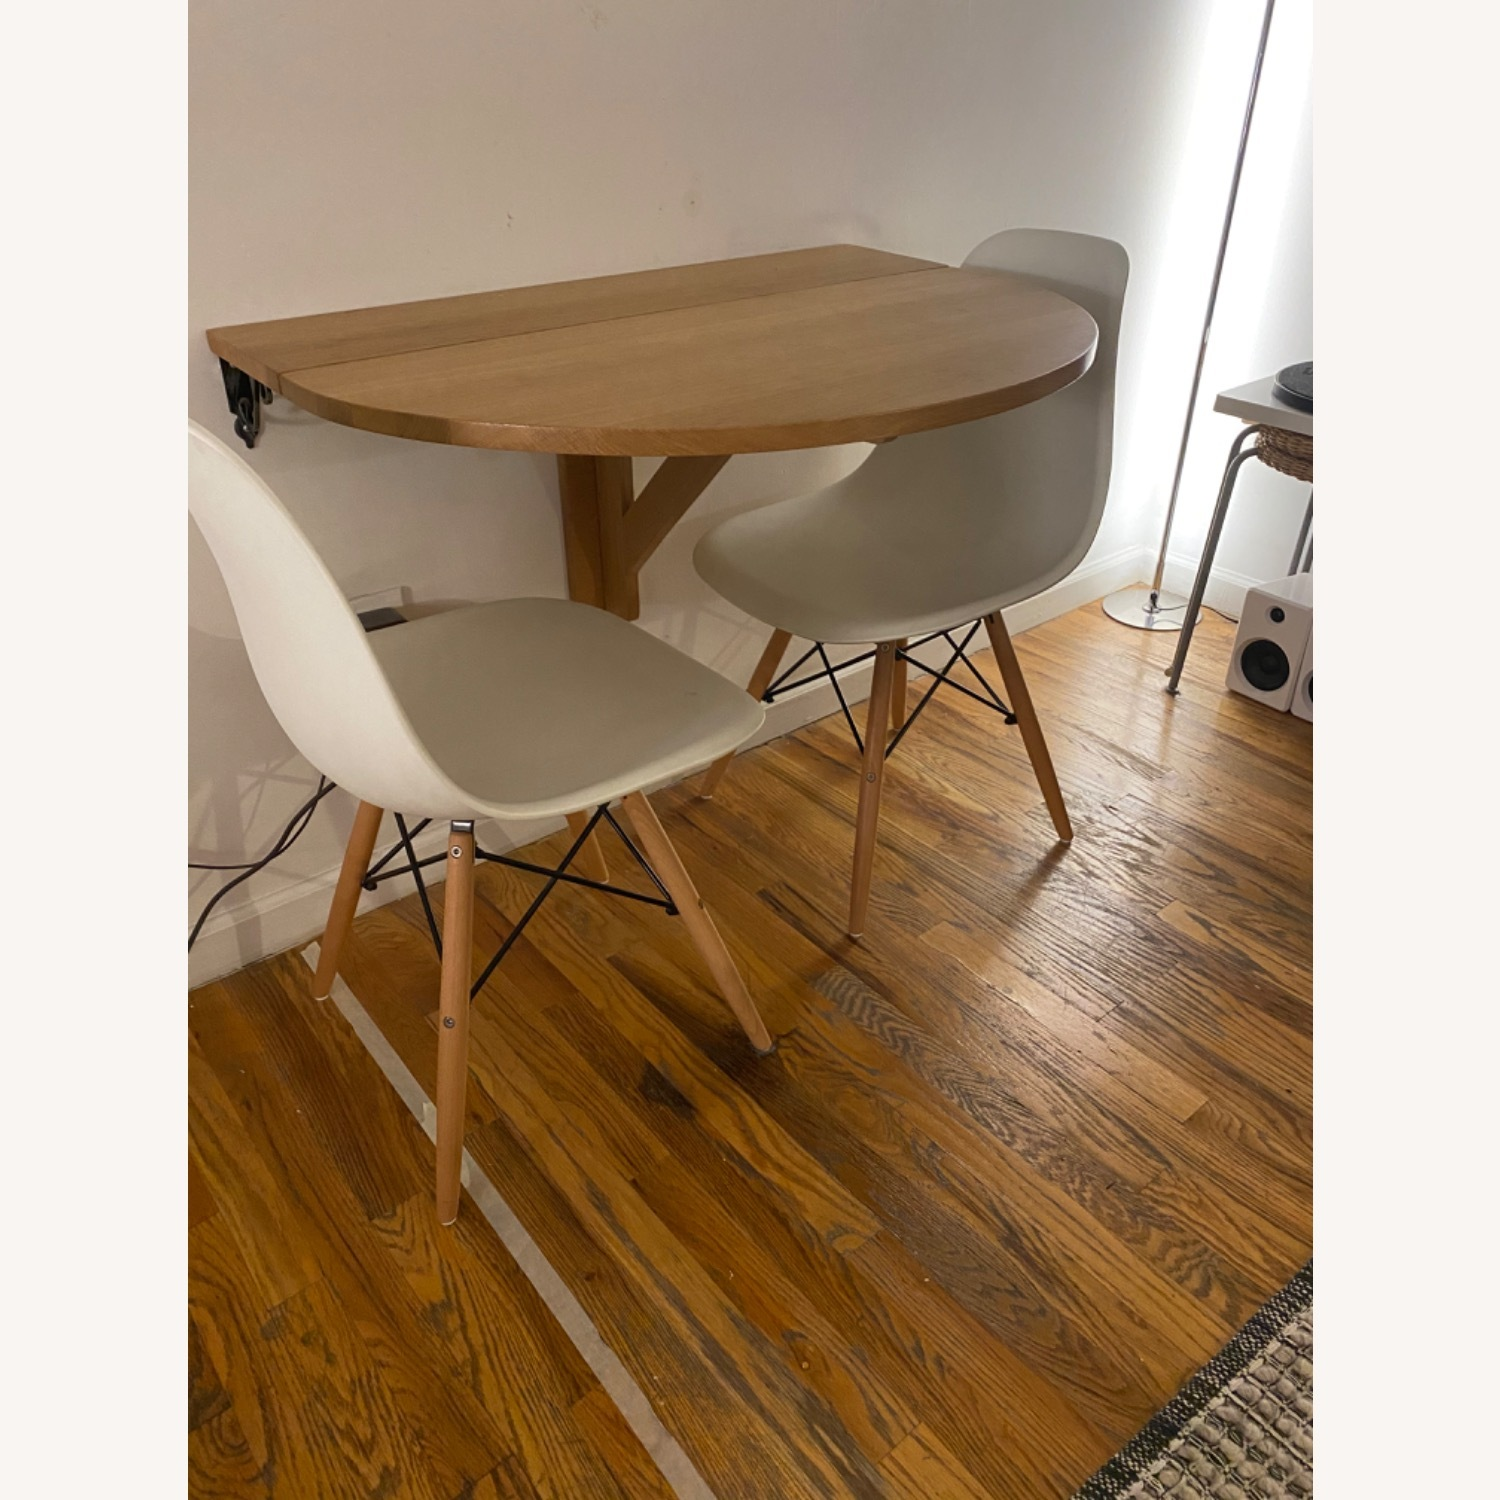 Solid Oak Wall Mounted Drop Leaf Table - image-11